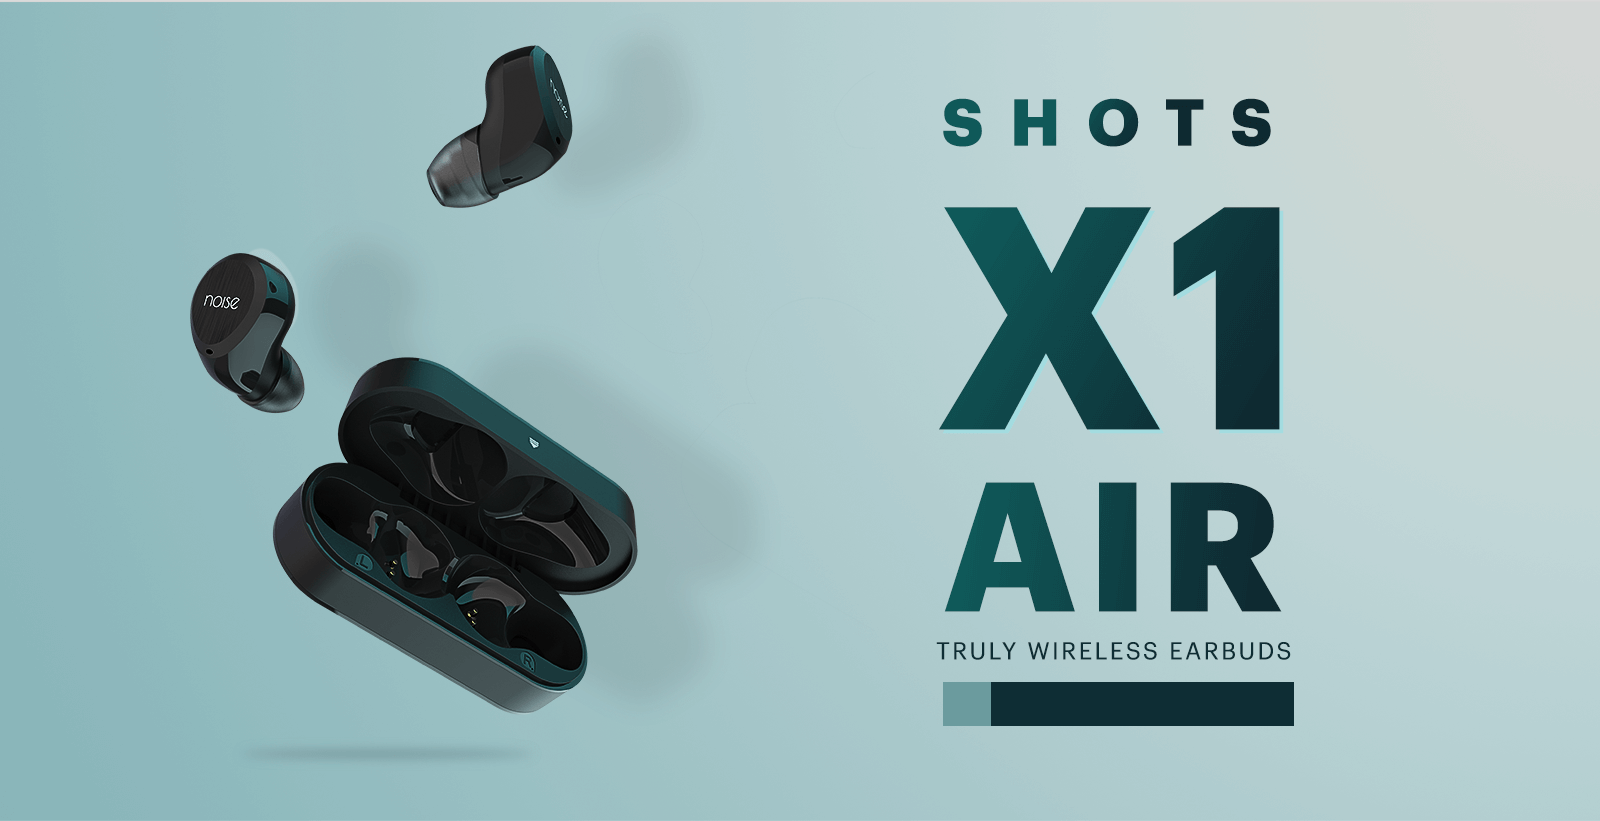 Noise Shots X1 Air Truly Wireless Earbuds